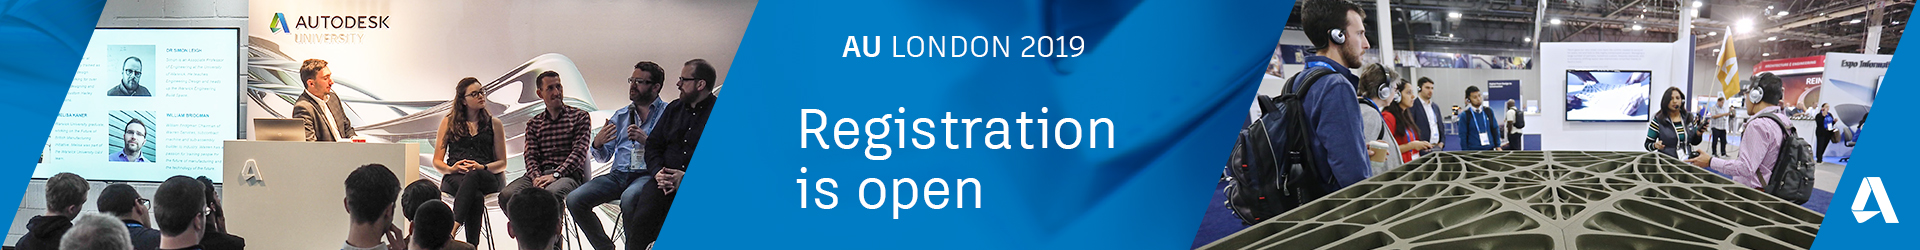 AU London Registration is Open